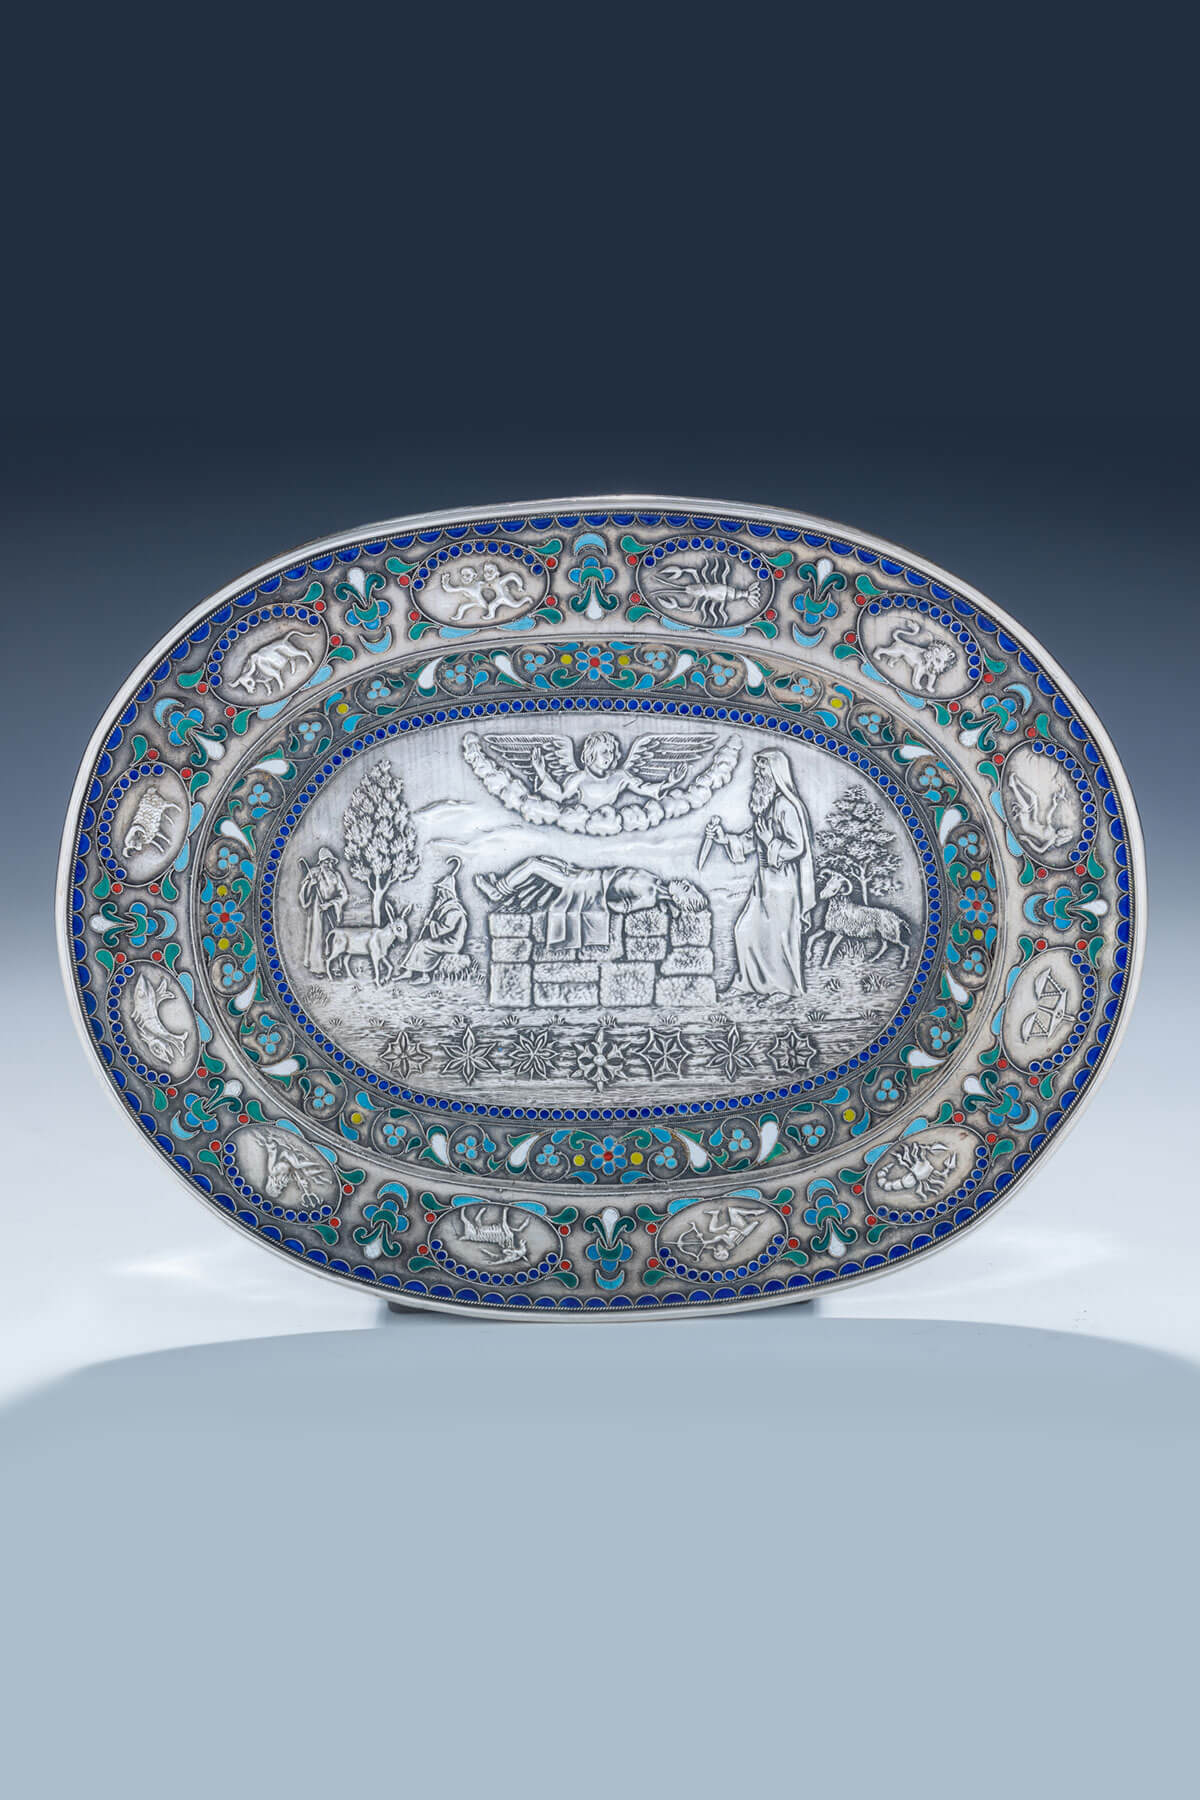 153. A Silver And Enamel Pidyon Haben Tray by Henryk Winograd